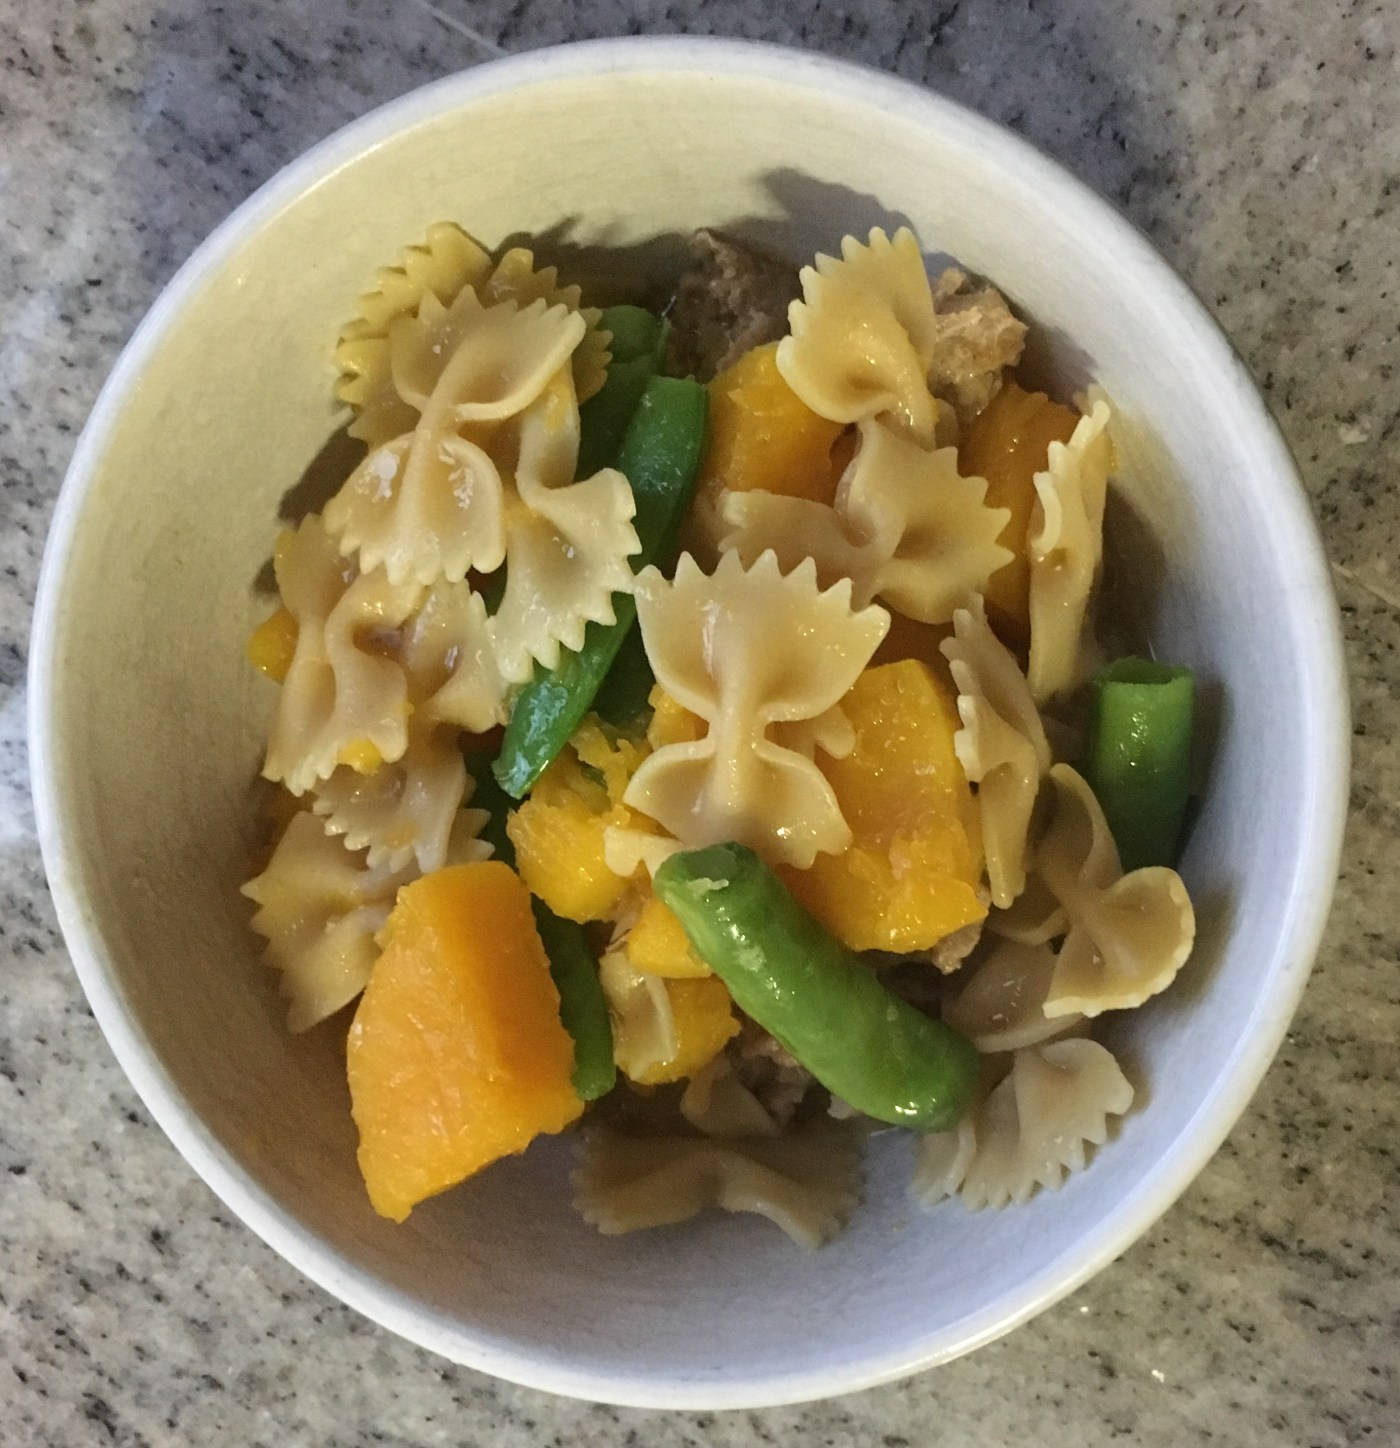 Simple weeknight pasta, butternut squash, pea & sausage 'soup'